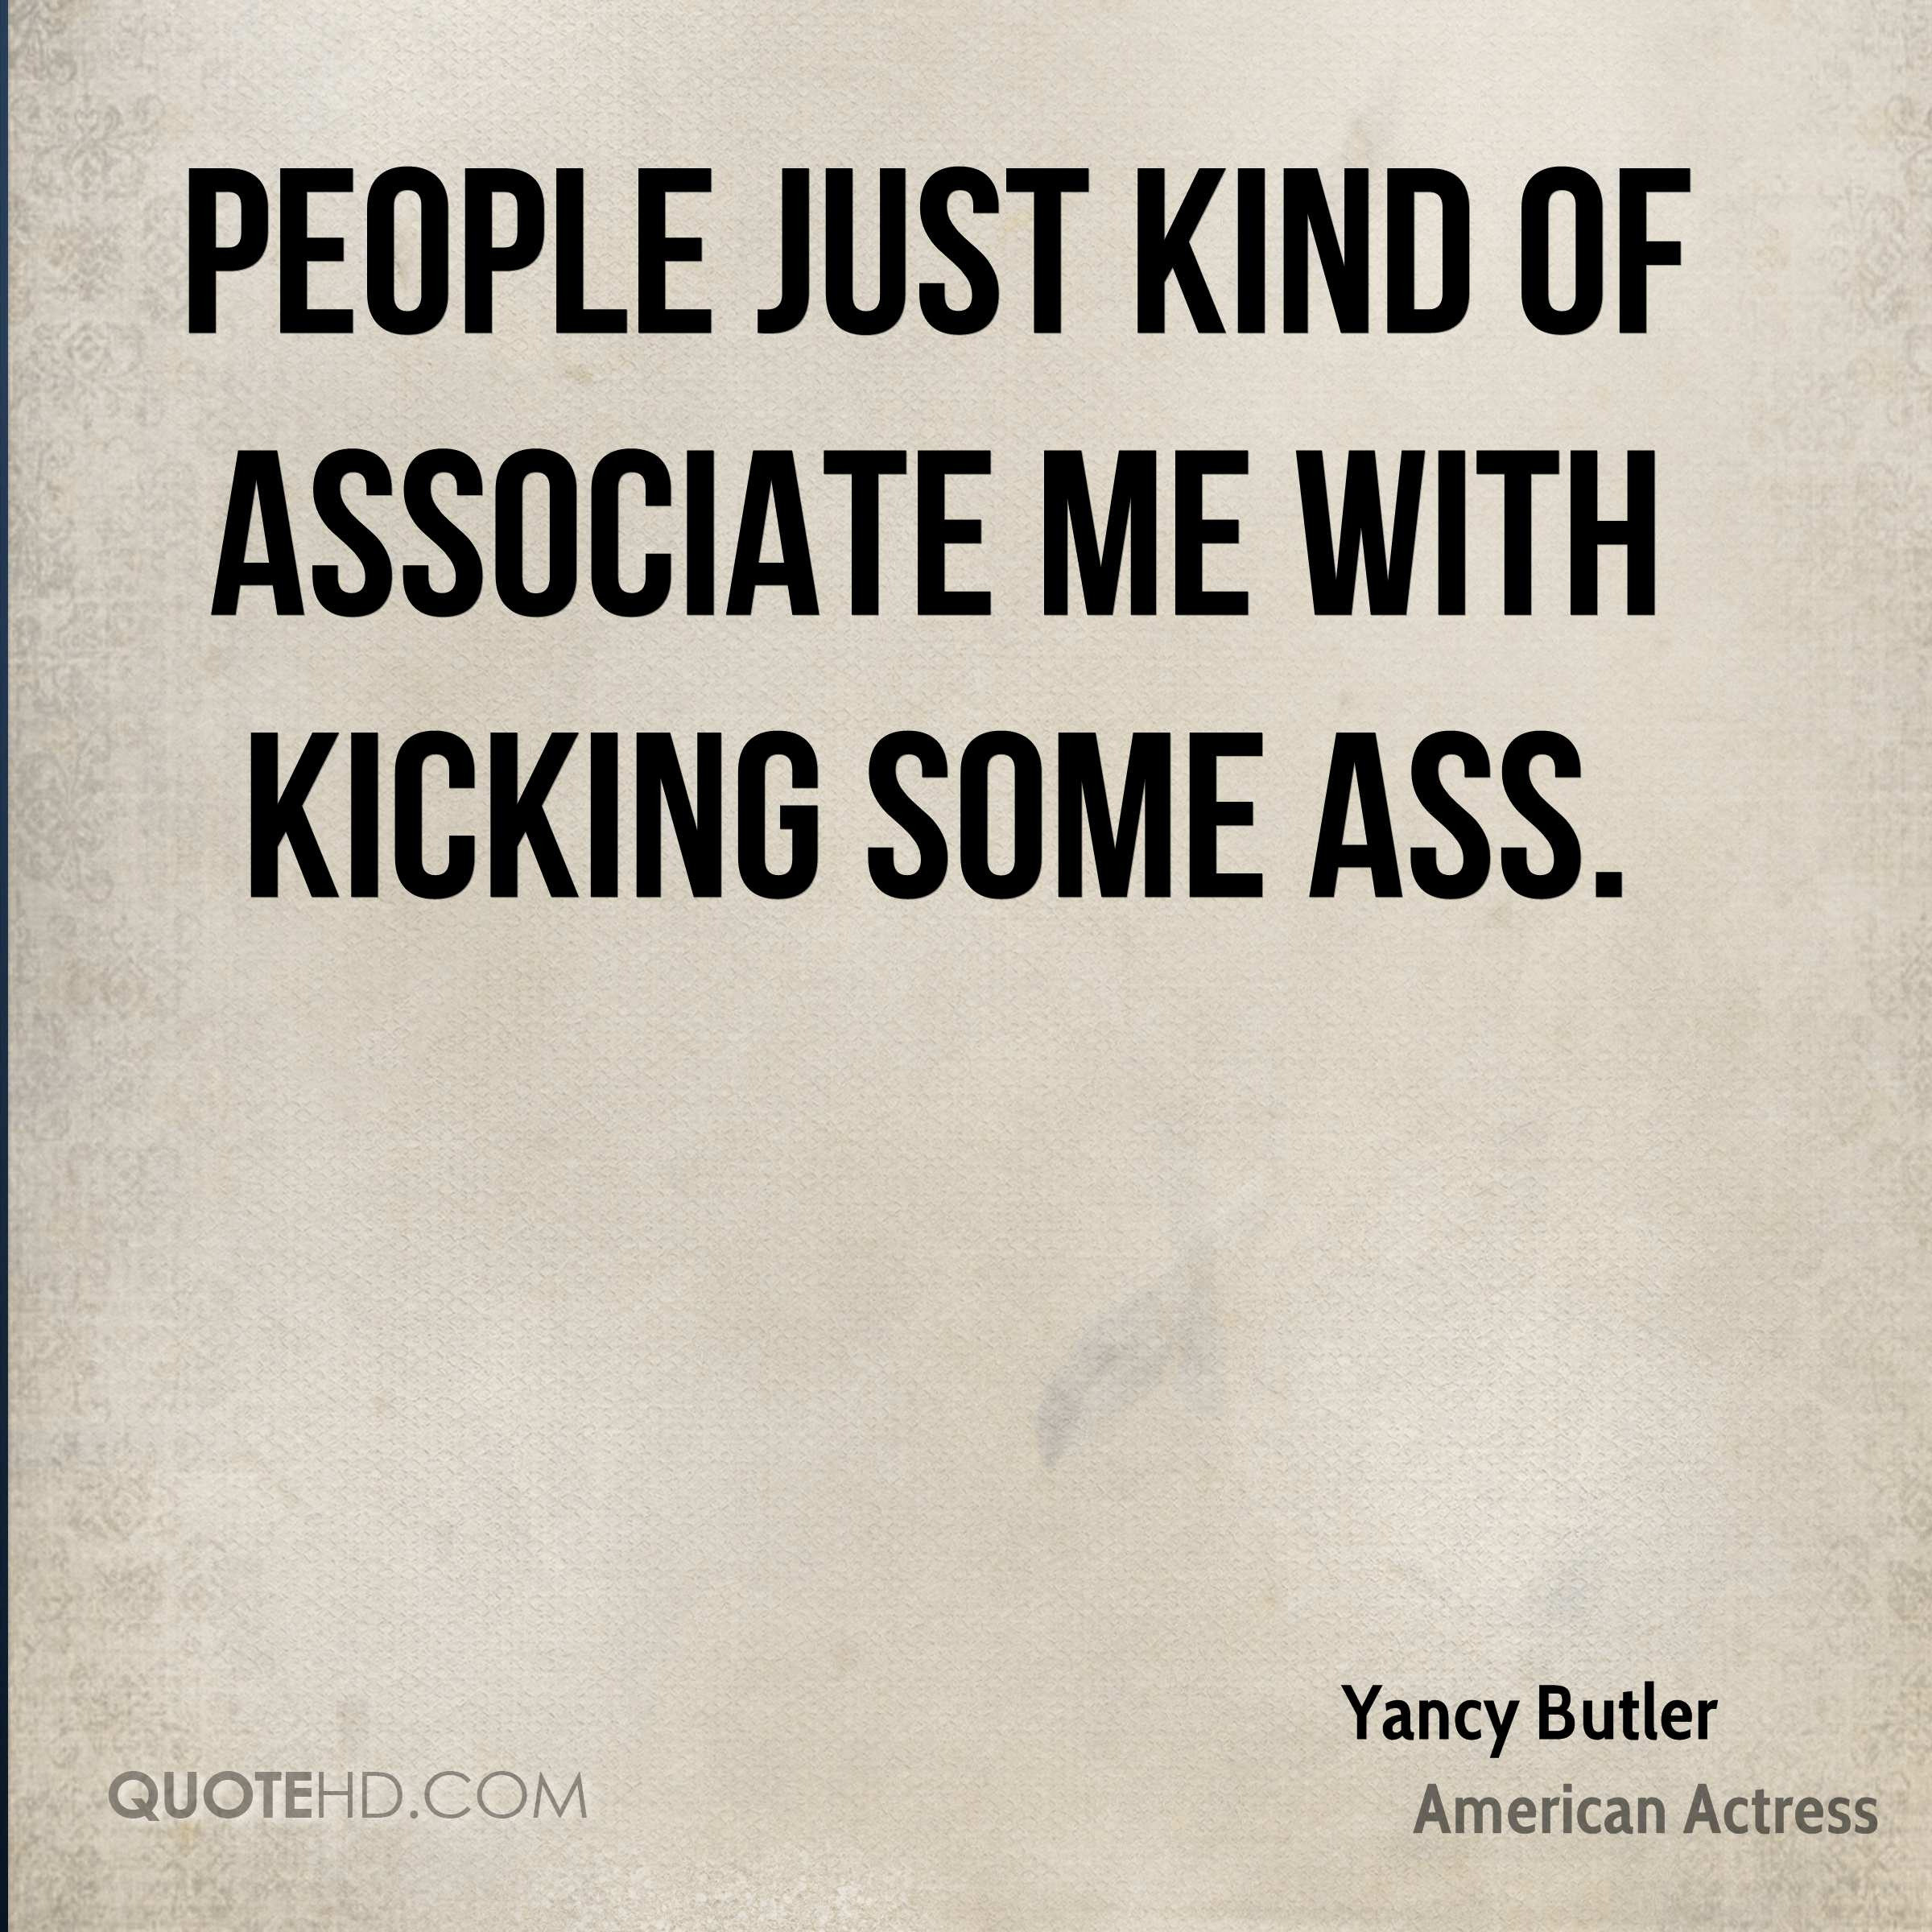 People just kind of associate me with kicking some ass.